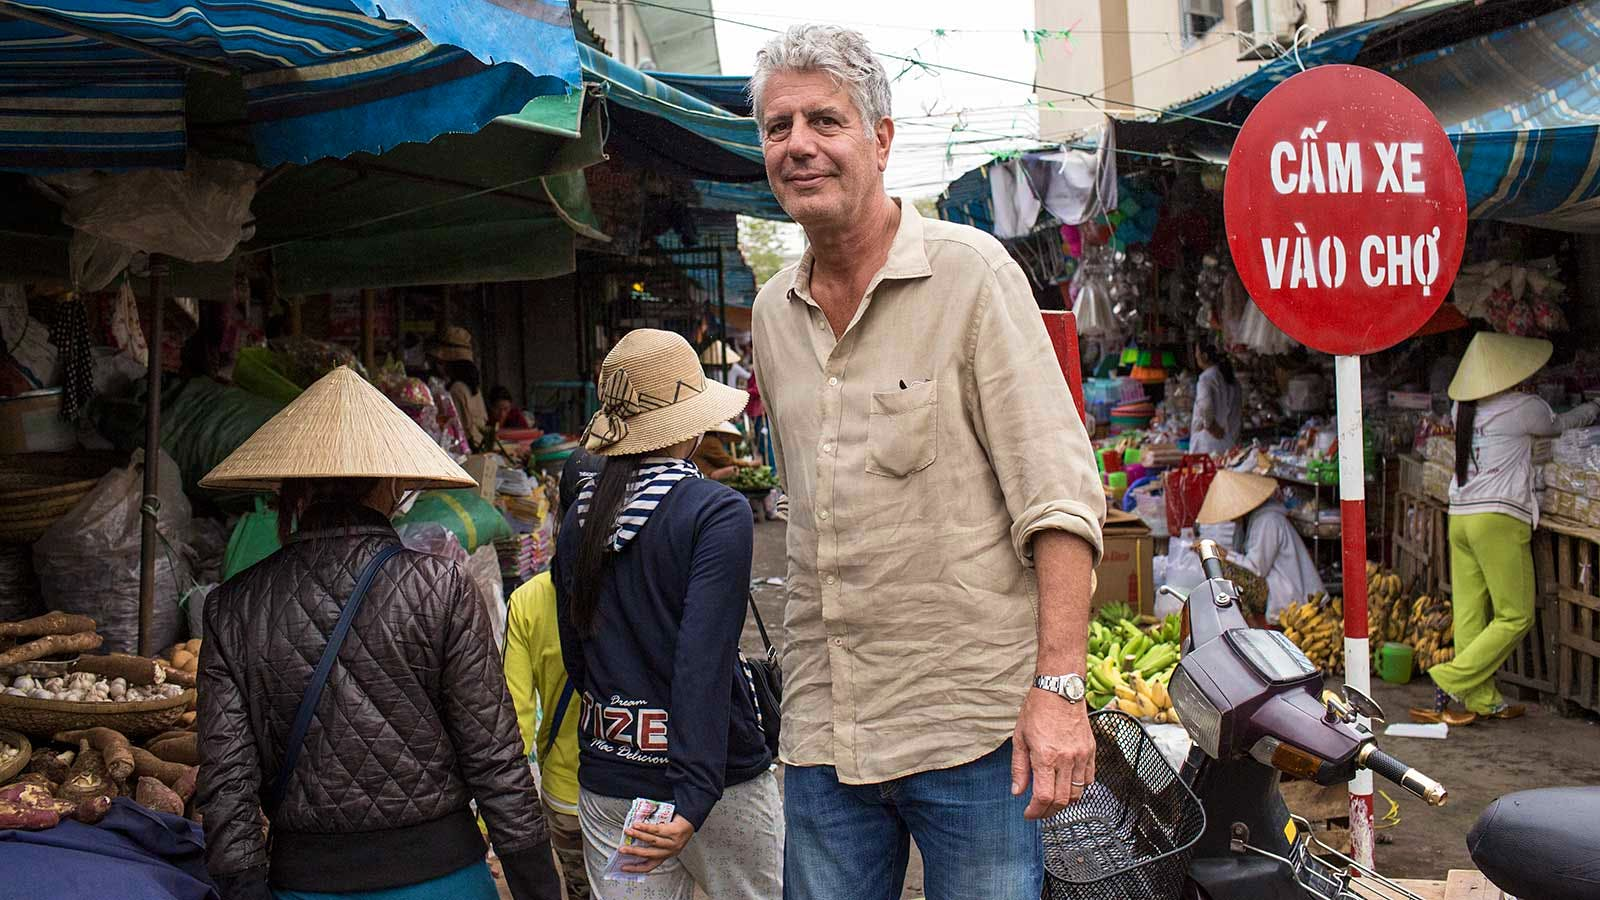 Anthony Bourdain's Art, Tools, Manuscripts Up for Auction